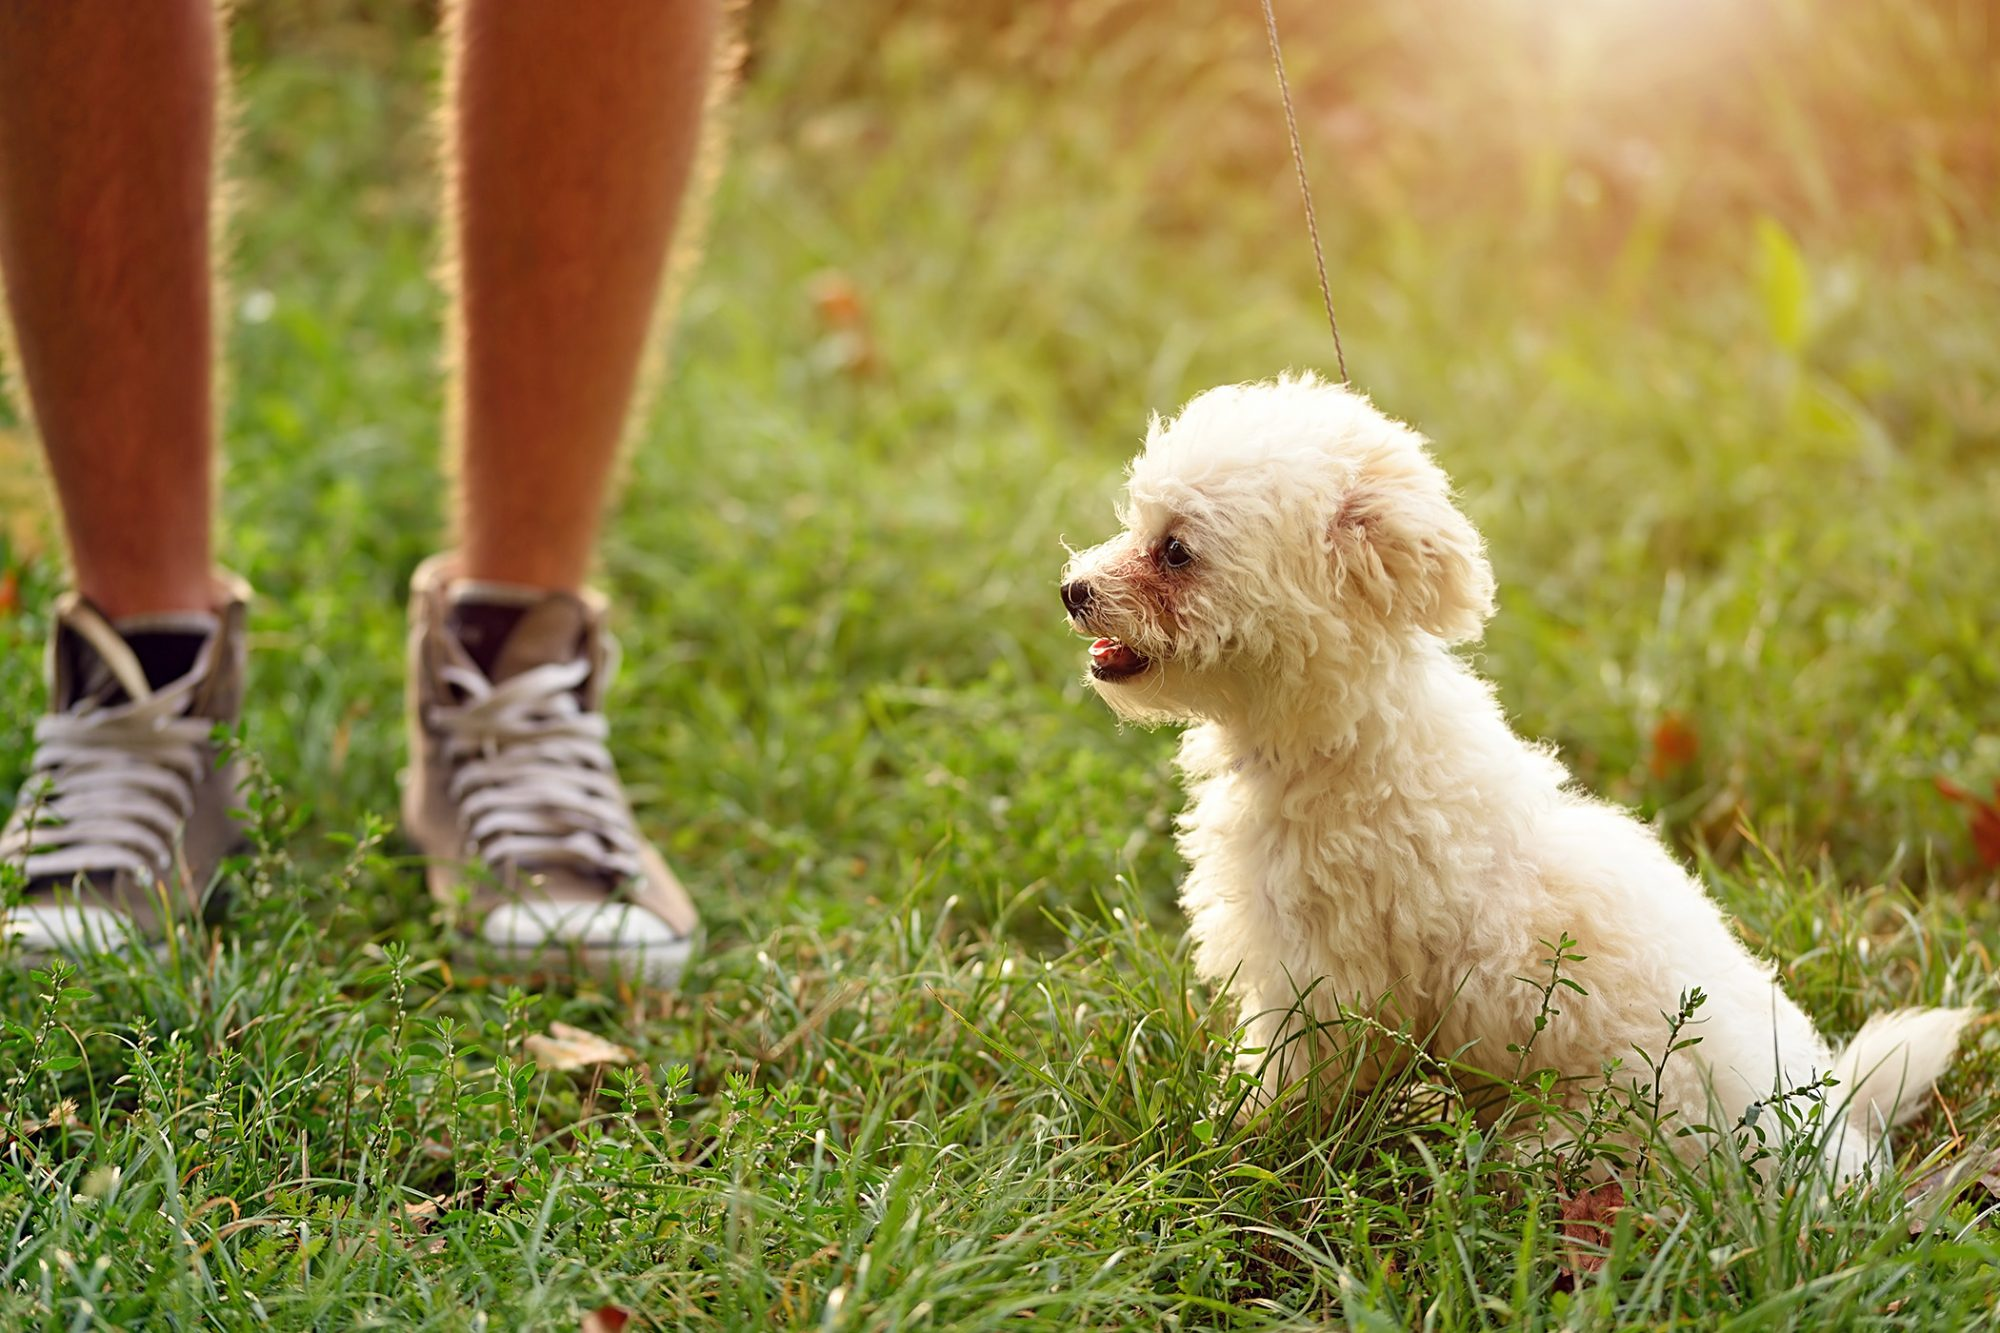 Bichon Frise dog sitting in grass next to man in sneakers